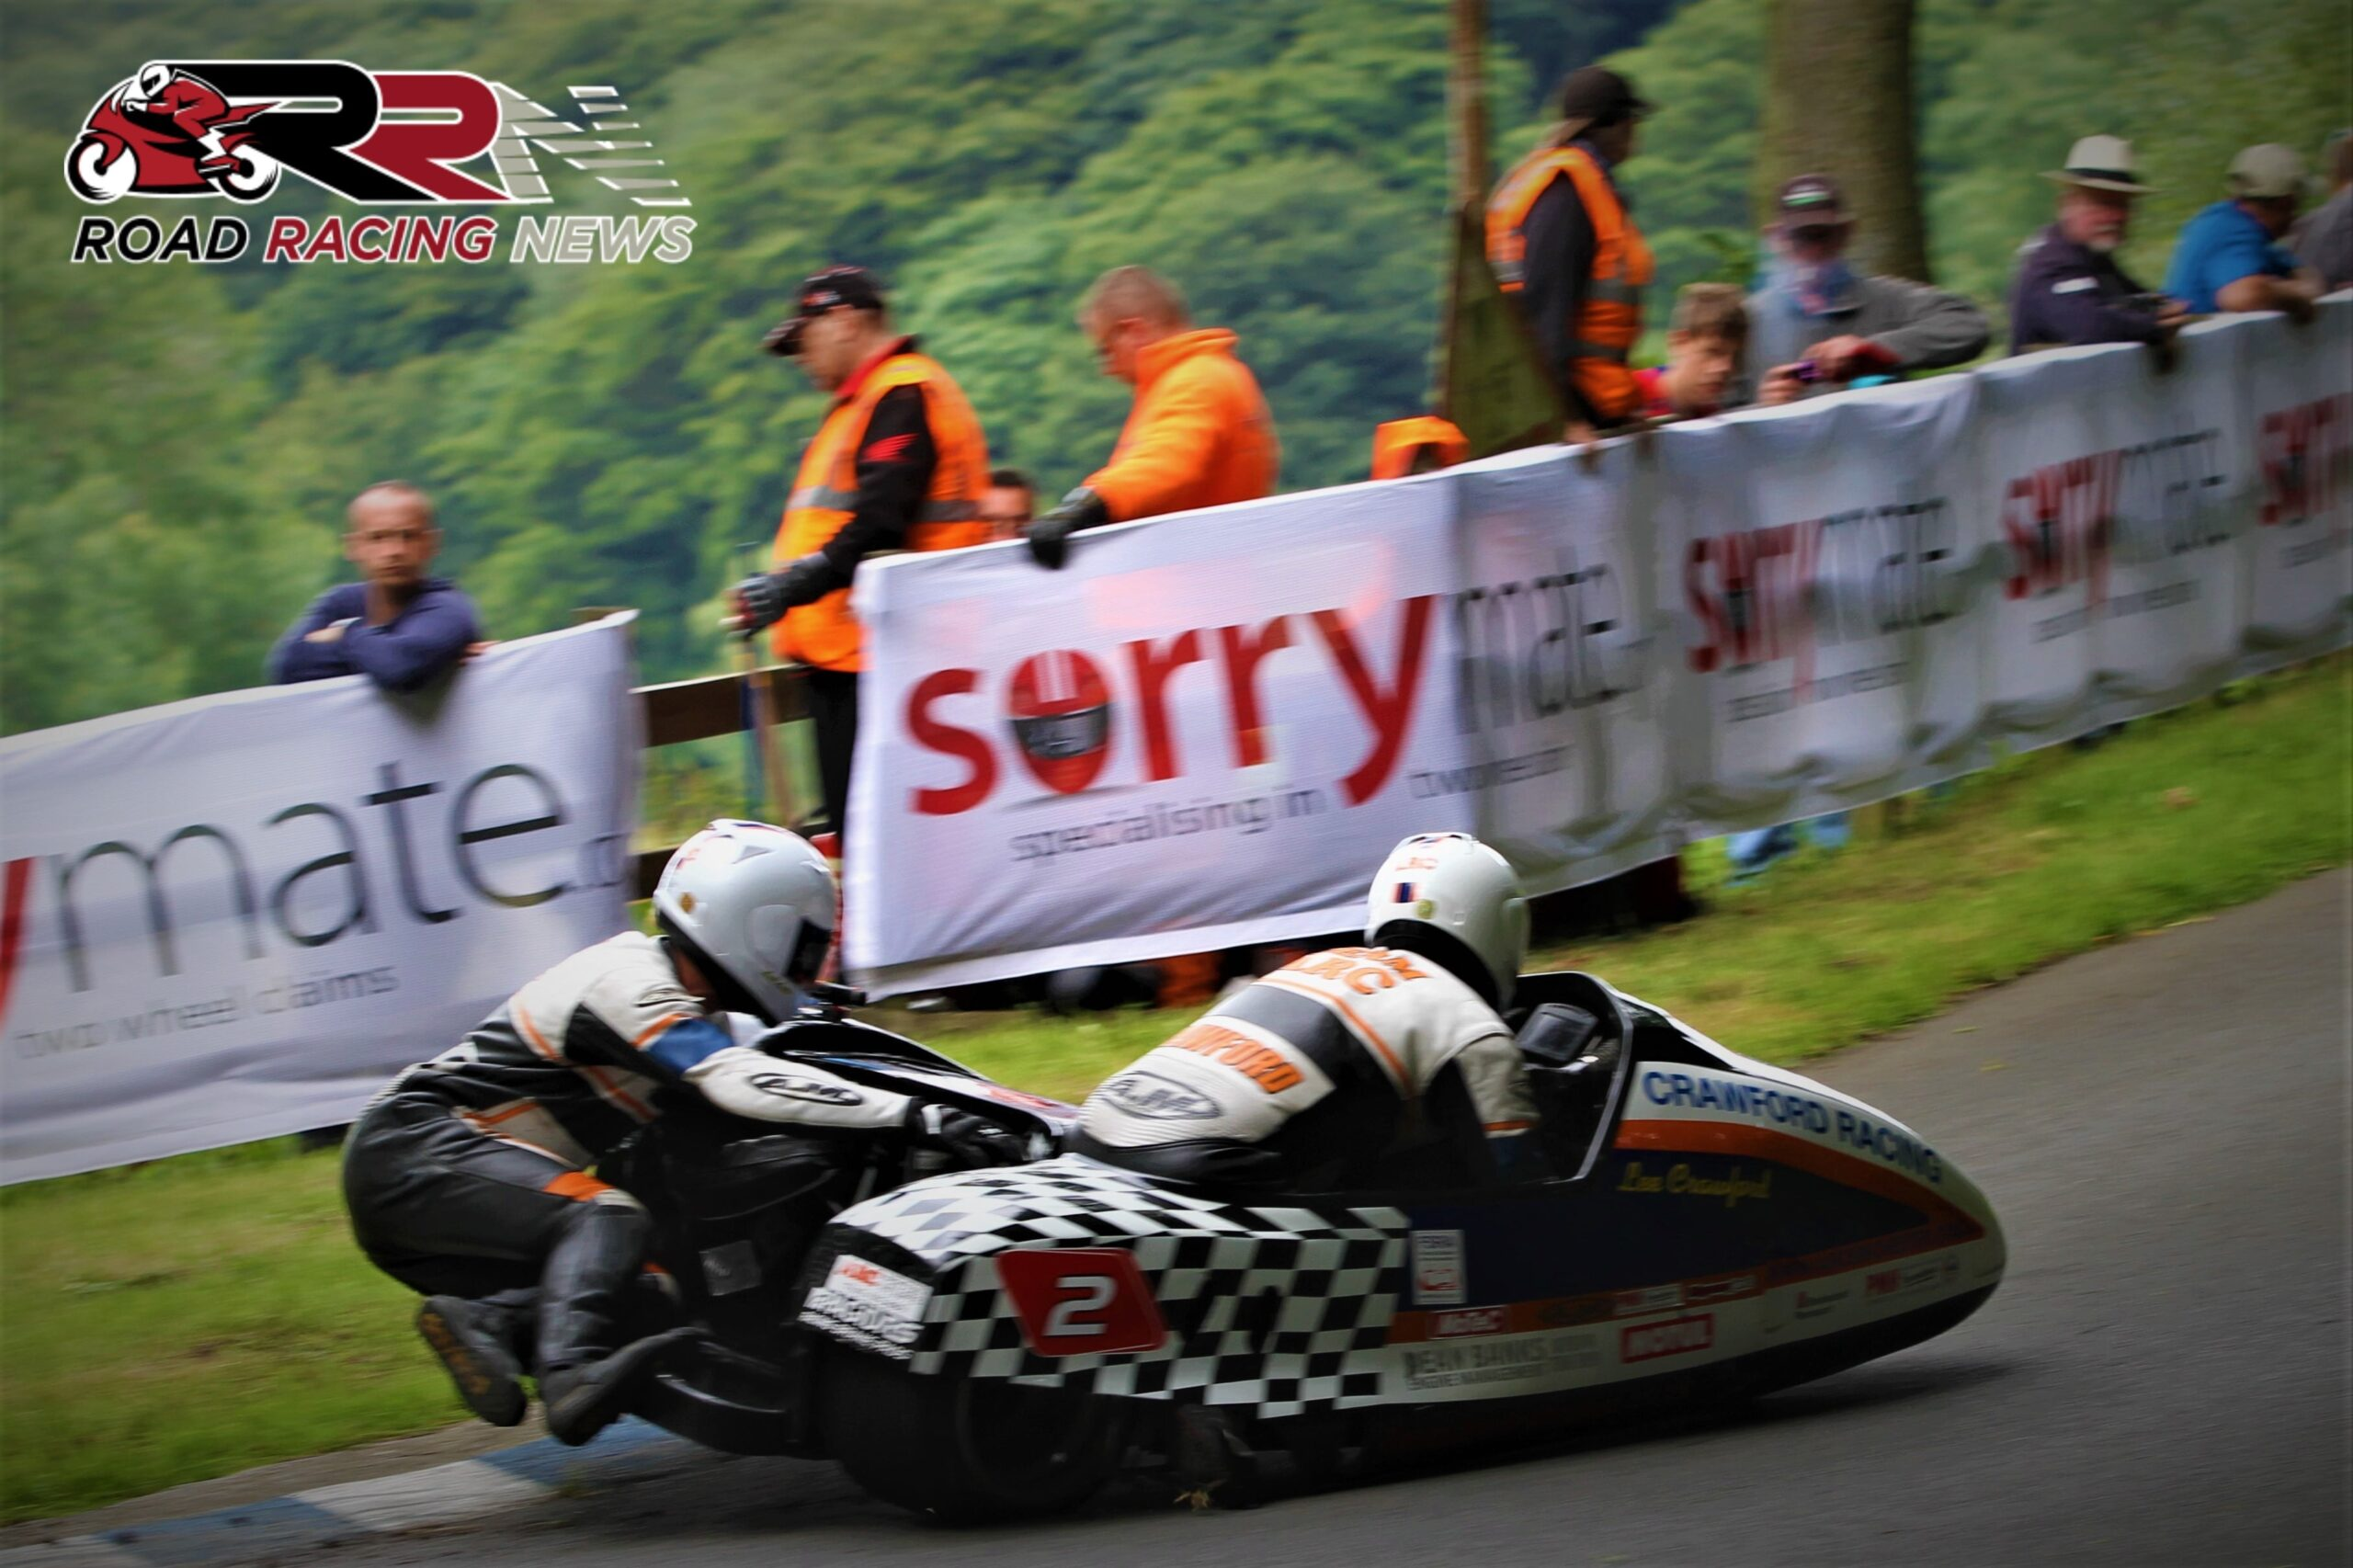 Barry Sheene Classic: Preview – Part 3 – Sidecar/Supersport Races